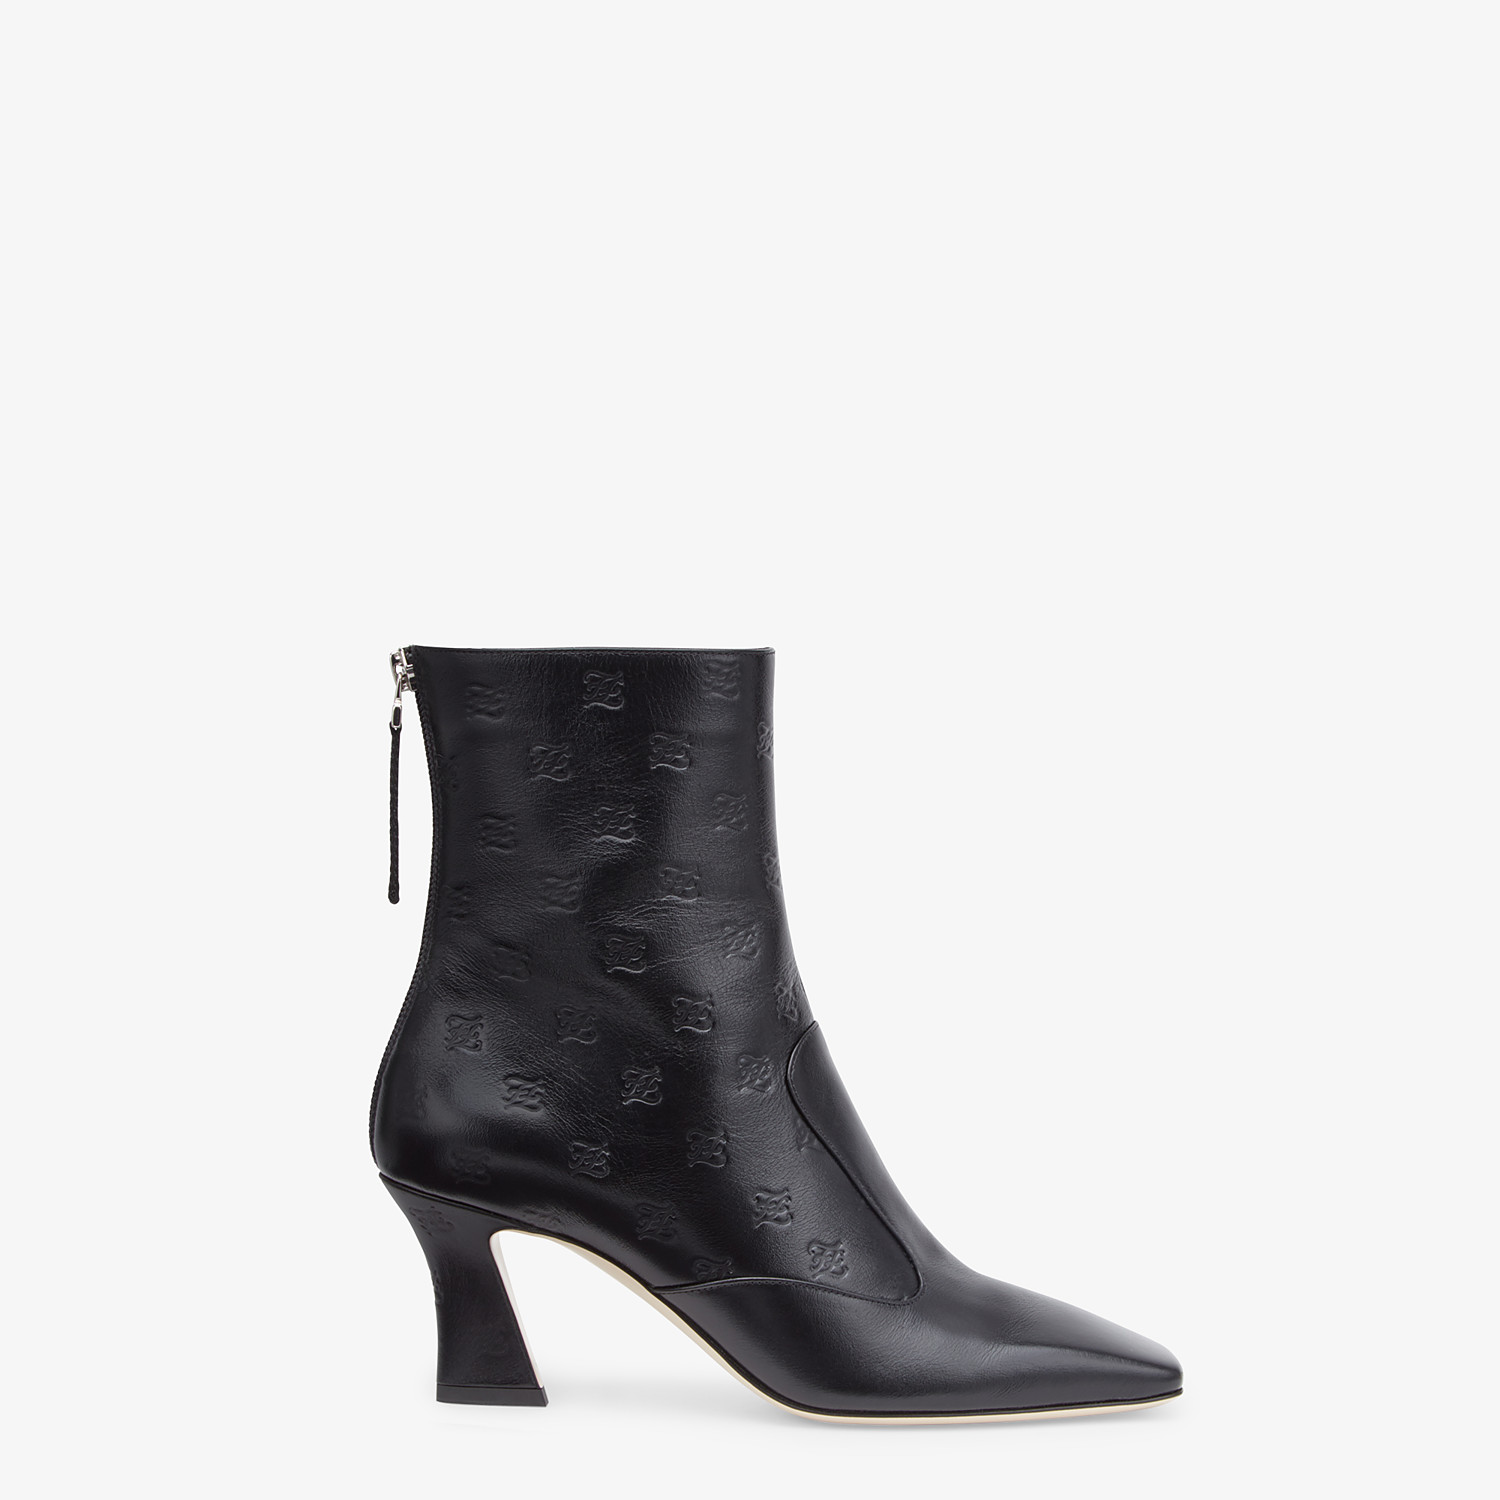 FENDI BOOTS - Black leather booties - view 1 detail